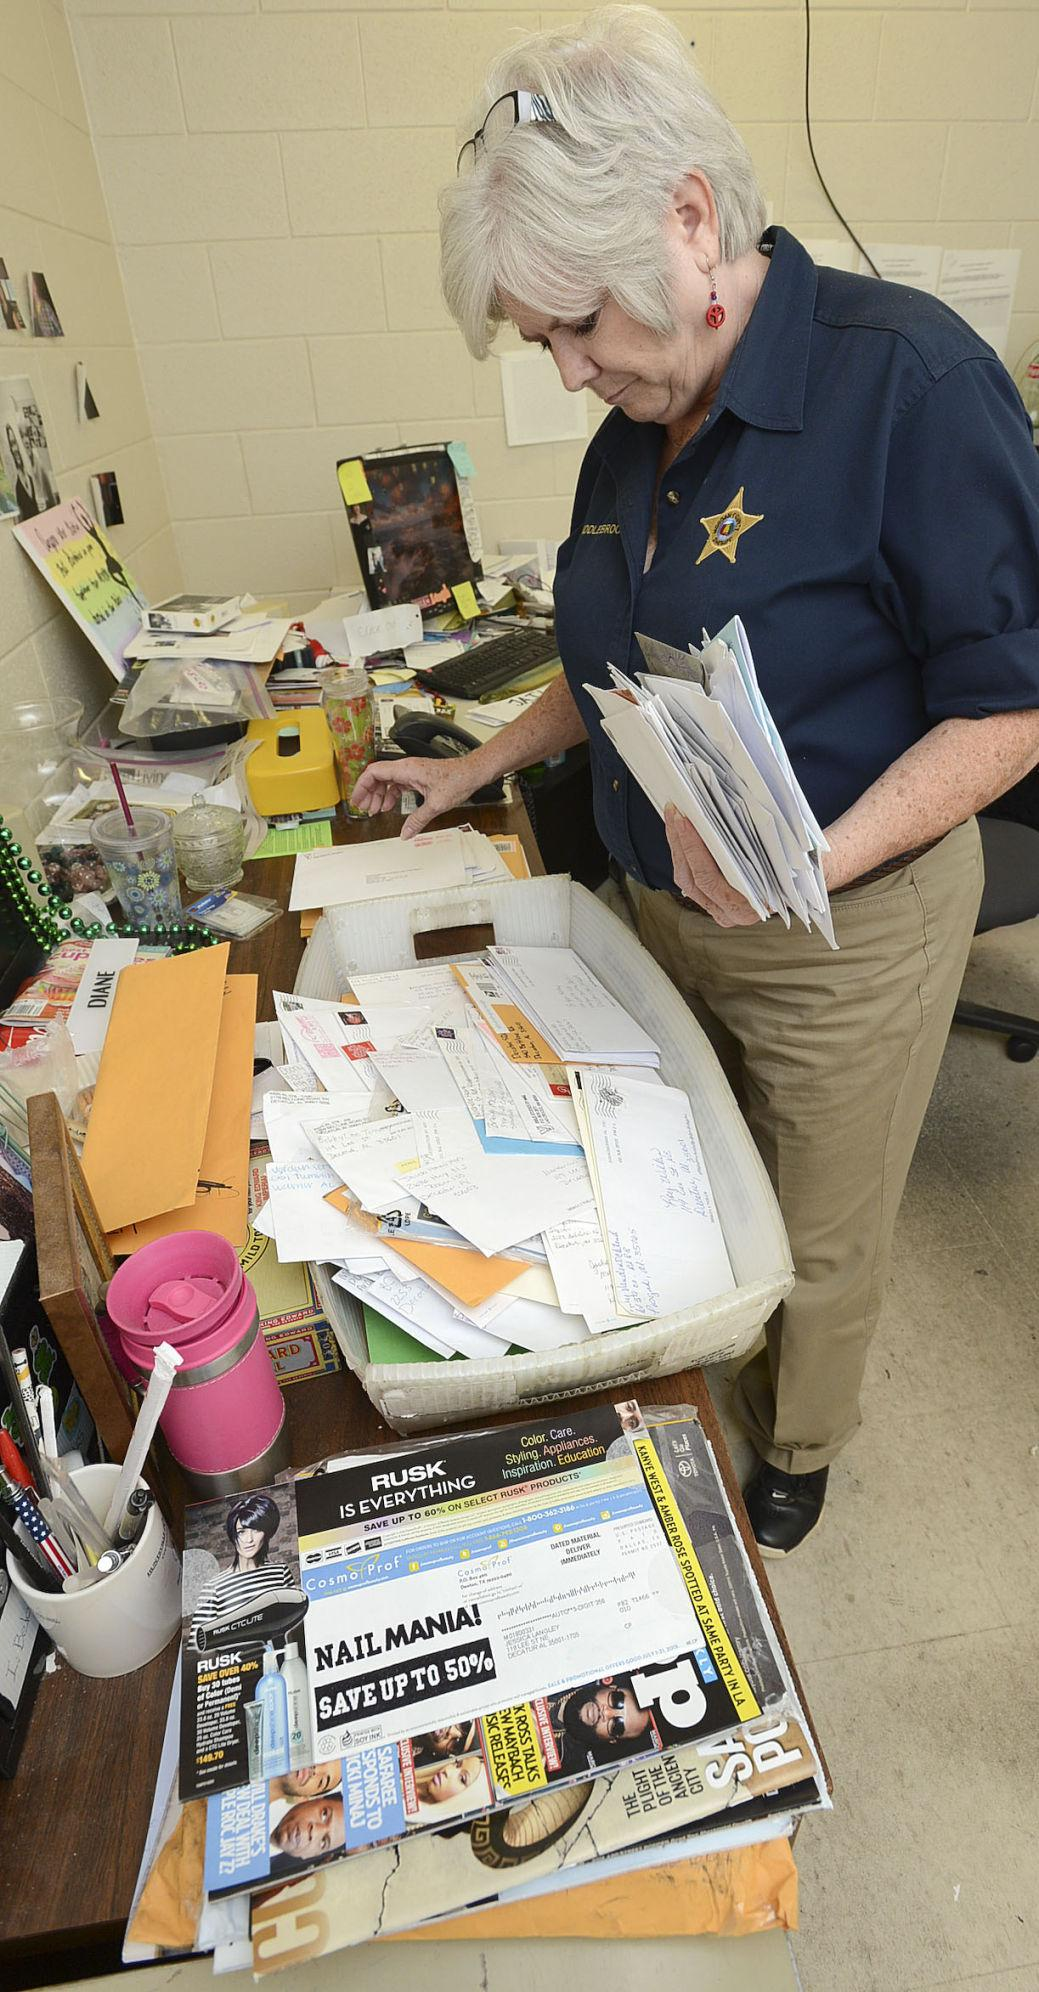 New policy prohibits inmates from receiving mail in